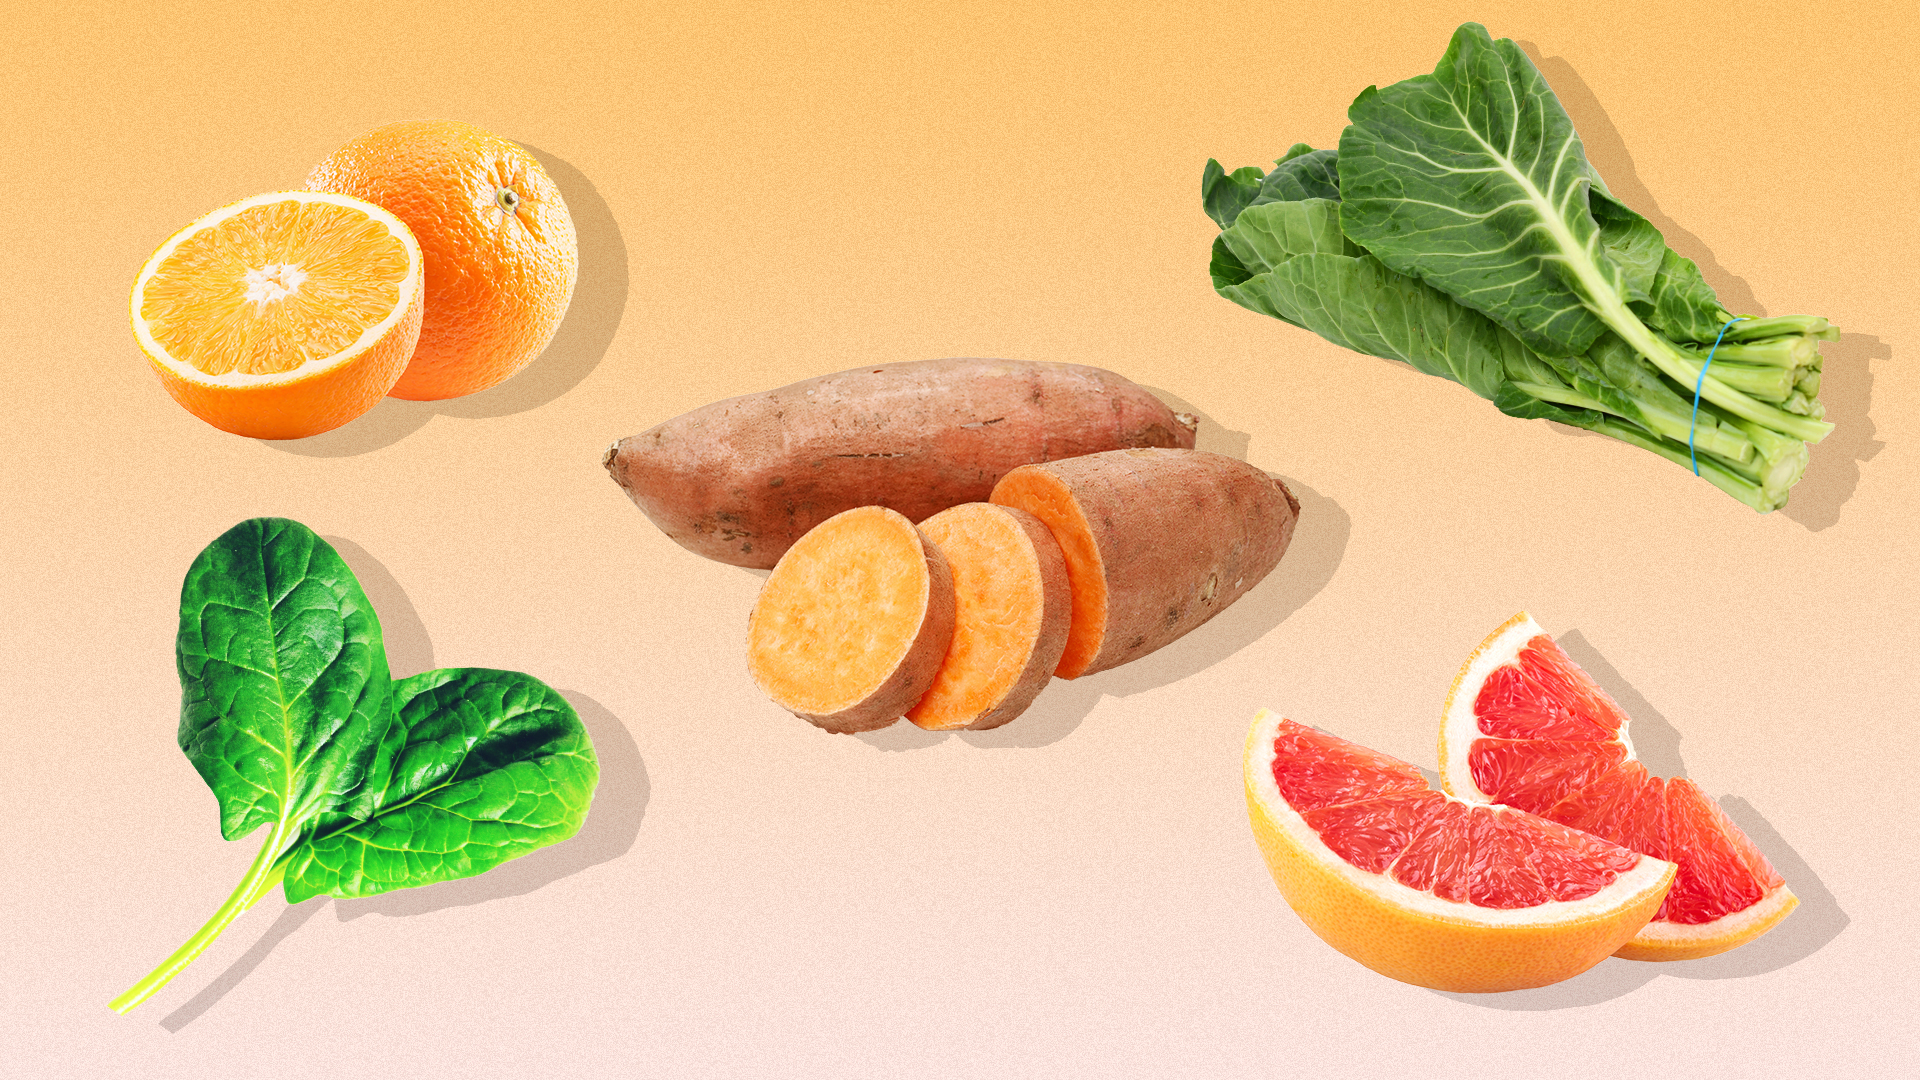 Fruits and vegetables on a peach-colored background